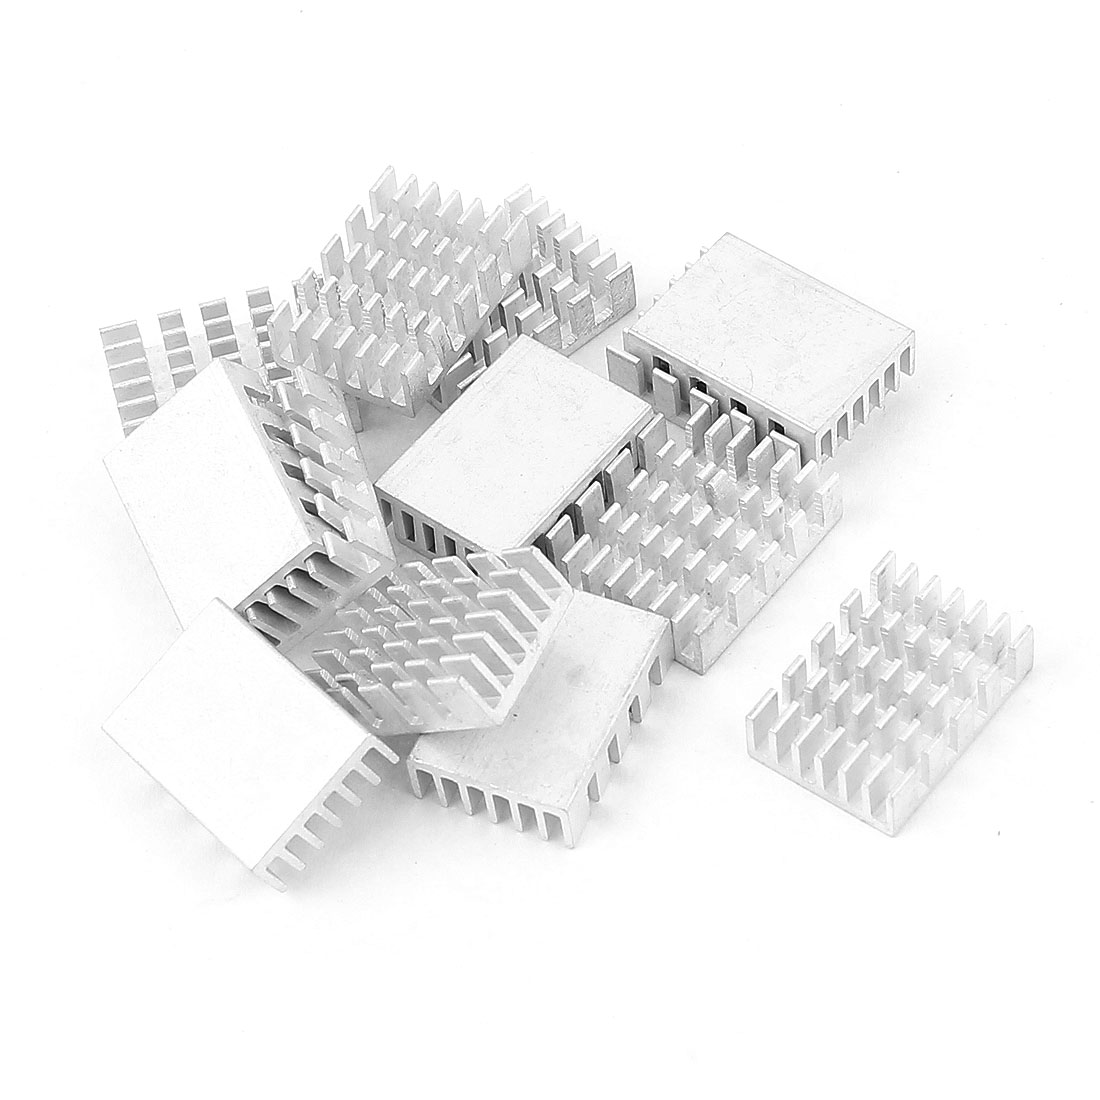 20mm x 14mm x 6mm LED Light Cooling Power Transistor Heatsink Cooler Silver Tone 14Pcs